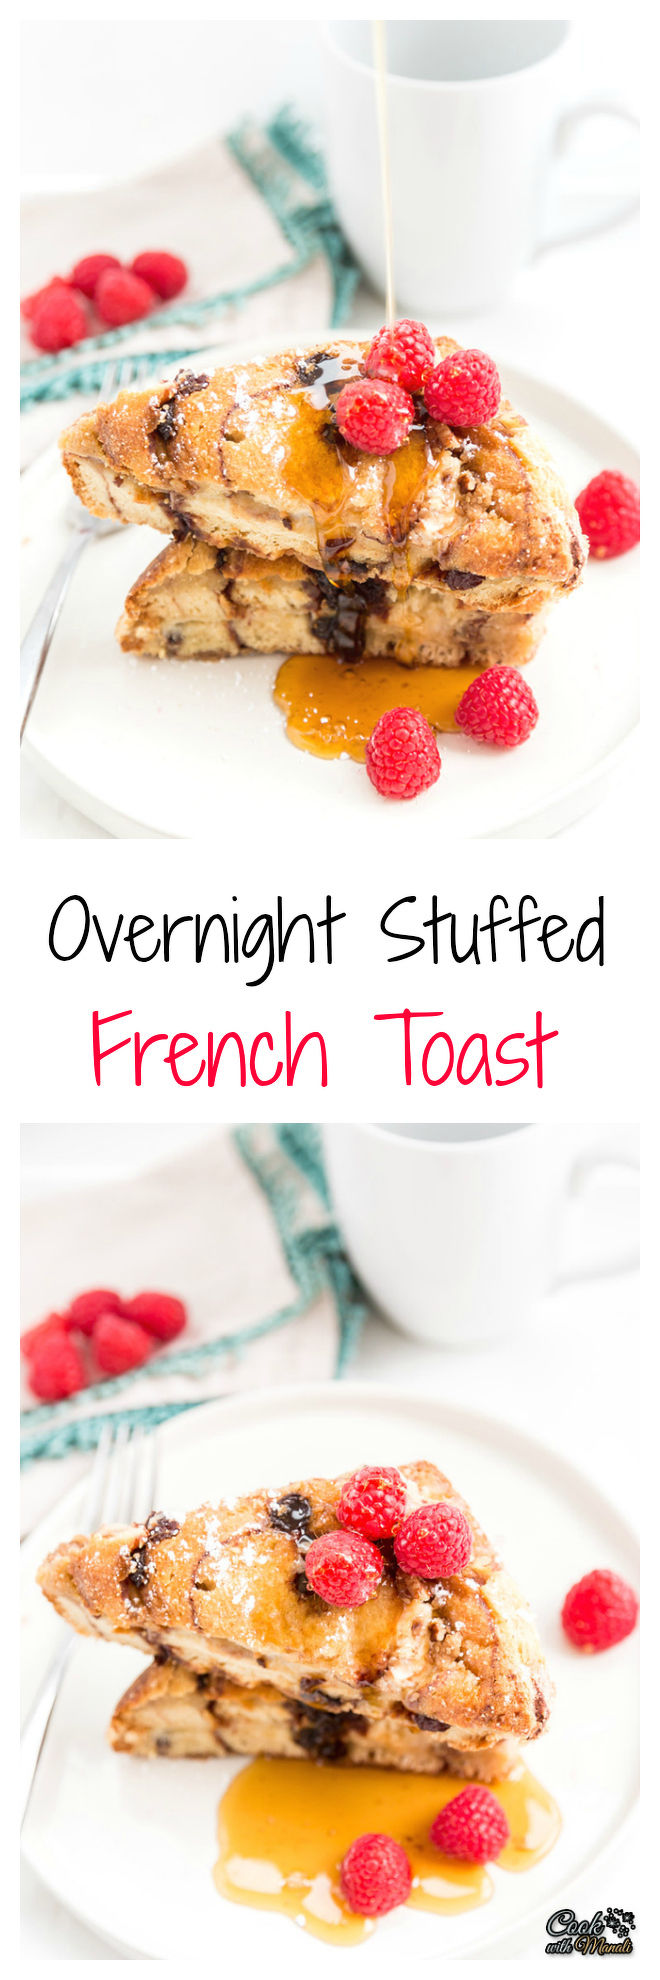 Overnight-Stuffed-French-Toast-Collage-nocwm